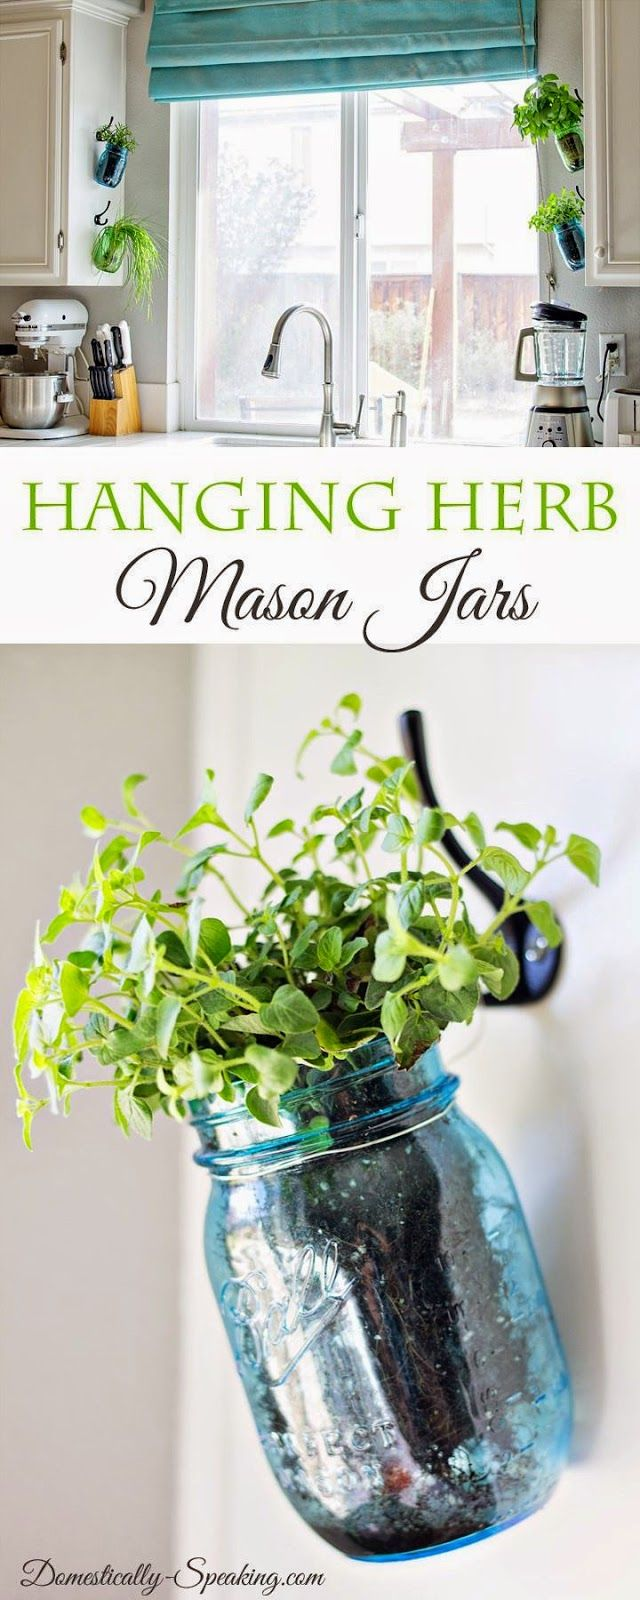 Great Hanging Fresh Herbs In Blue And Green Mason Jars   Perfect Way To Have An  Indoor Herb Garden In Your Kitchen!